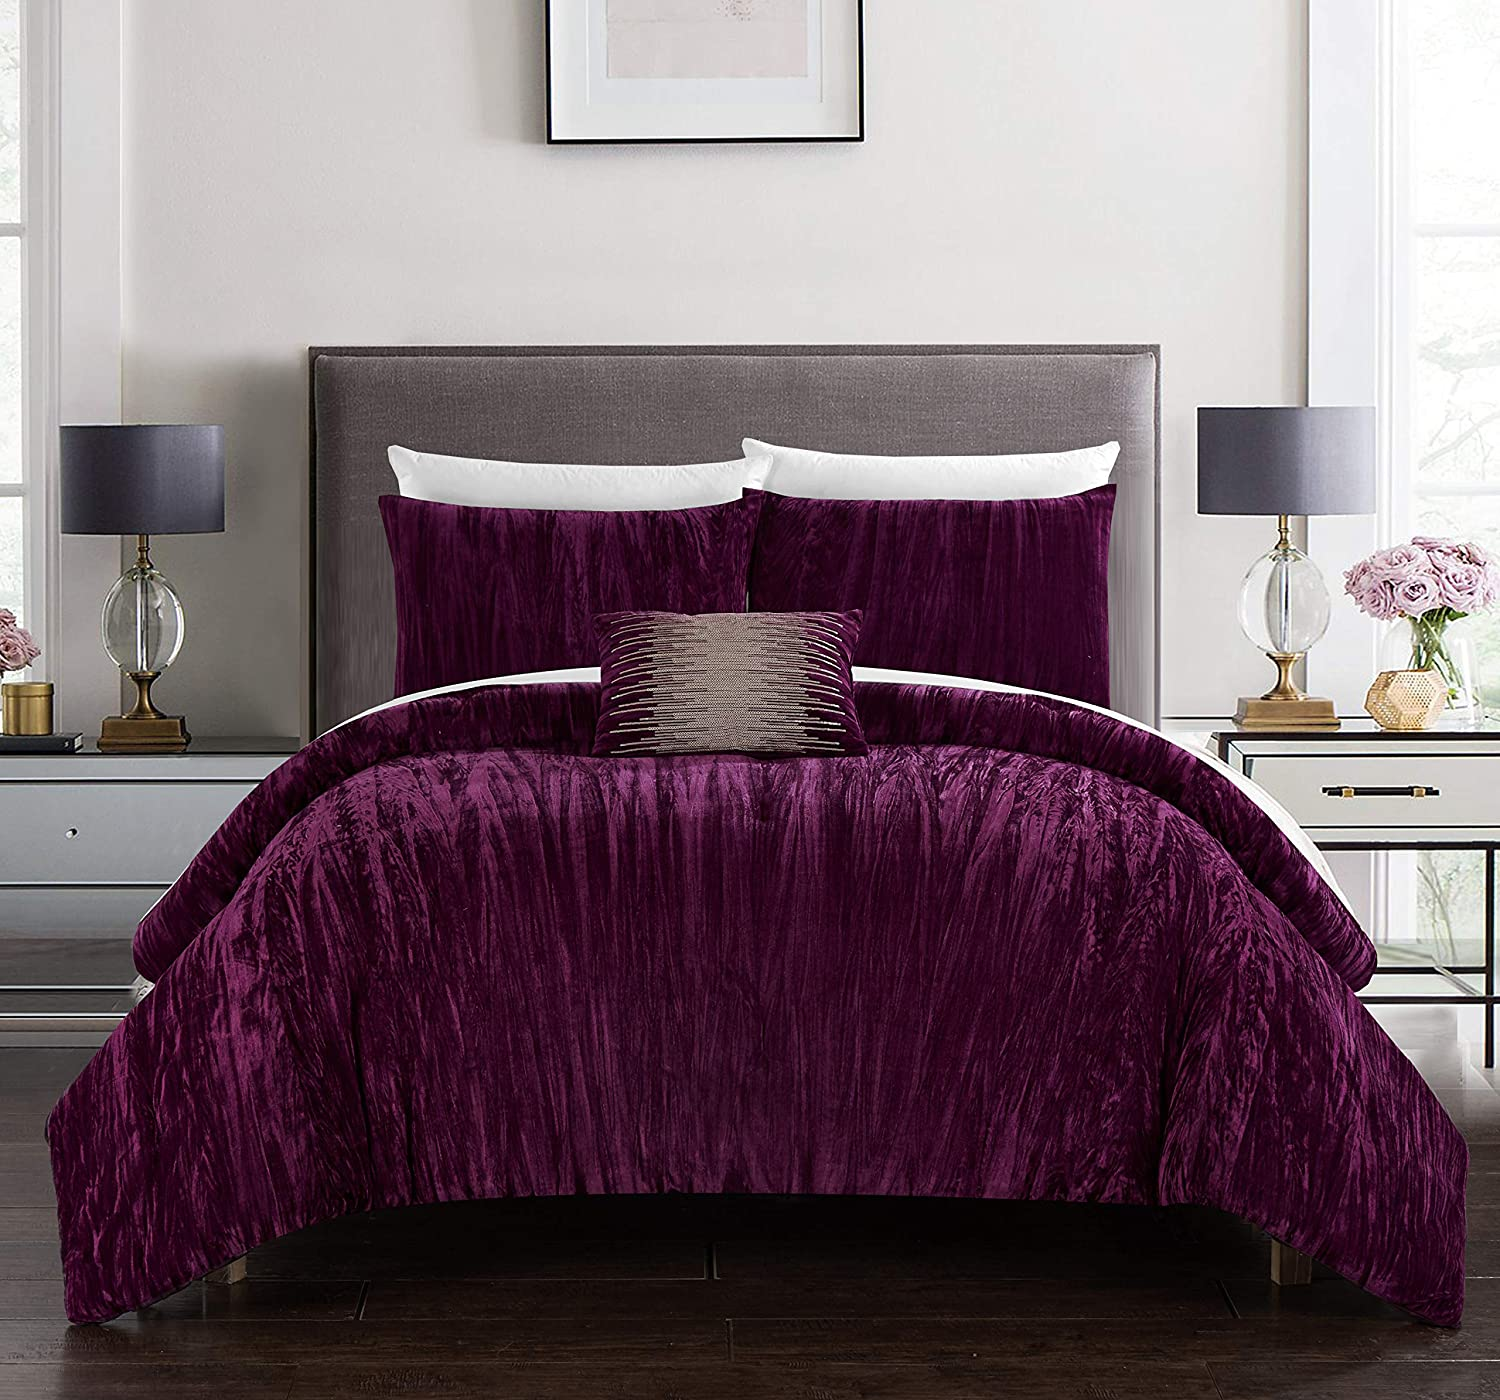 Chic Home Westmont 4 Piece Comforter Set Crinkle Crushed Velvet Bedding - Decorative Pillow Shams Included Queen Plum